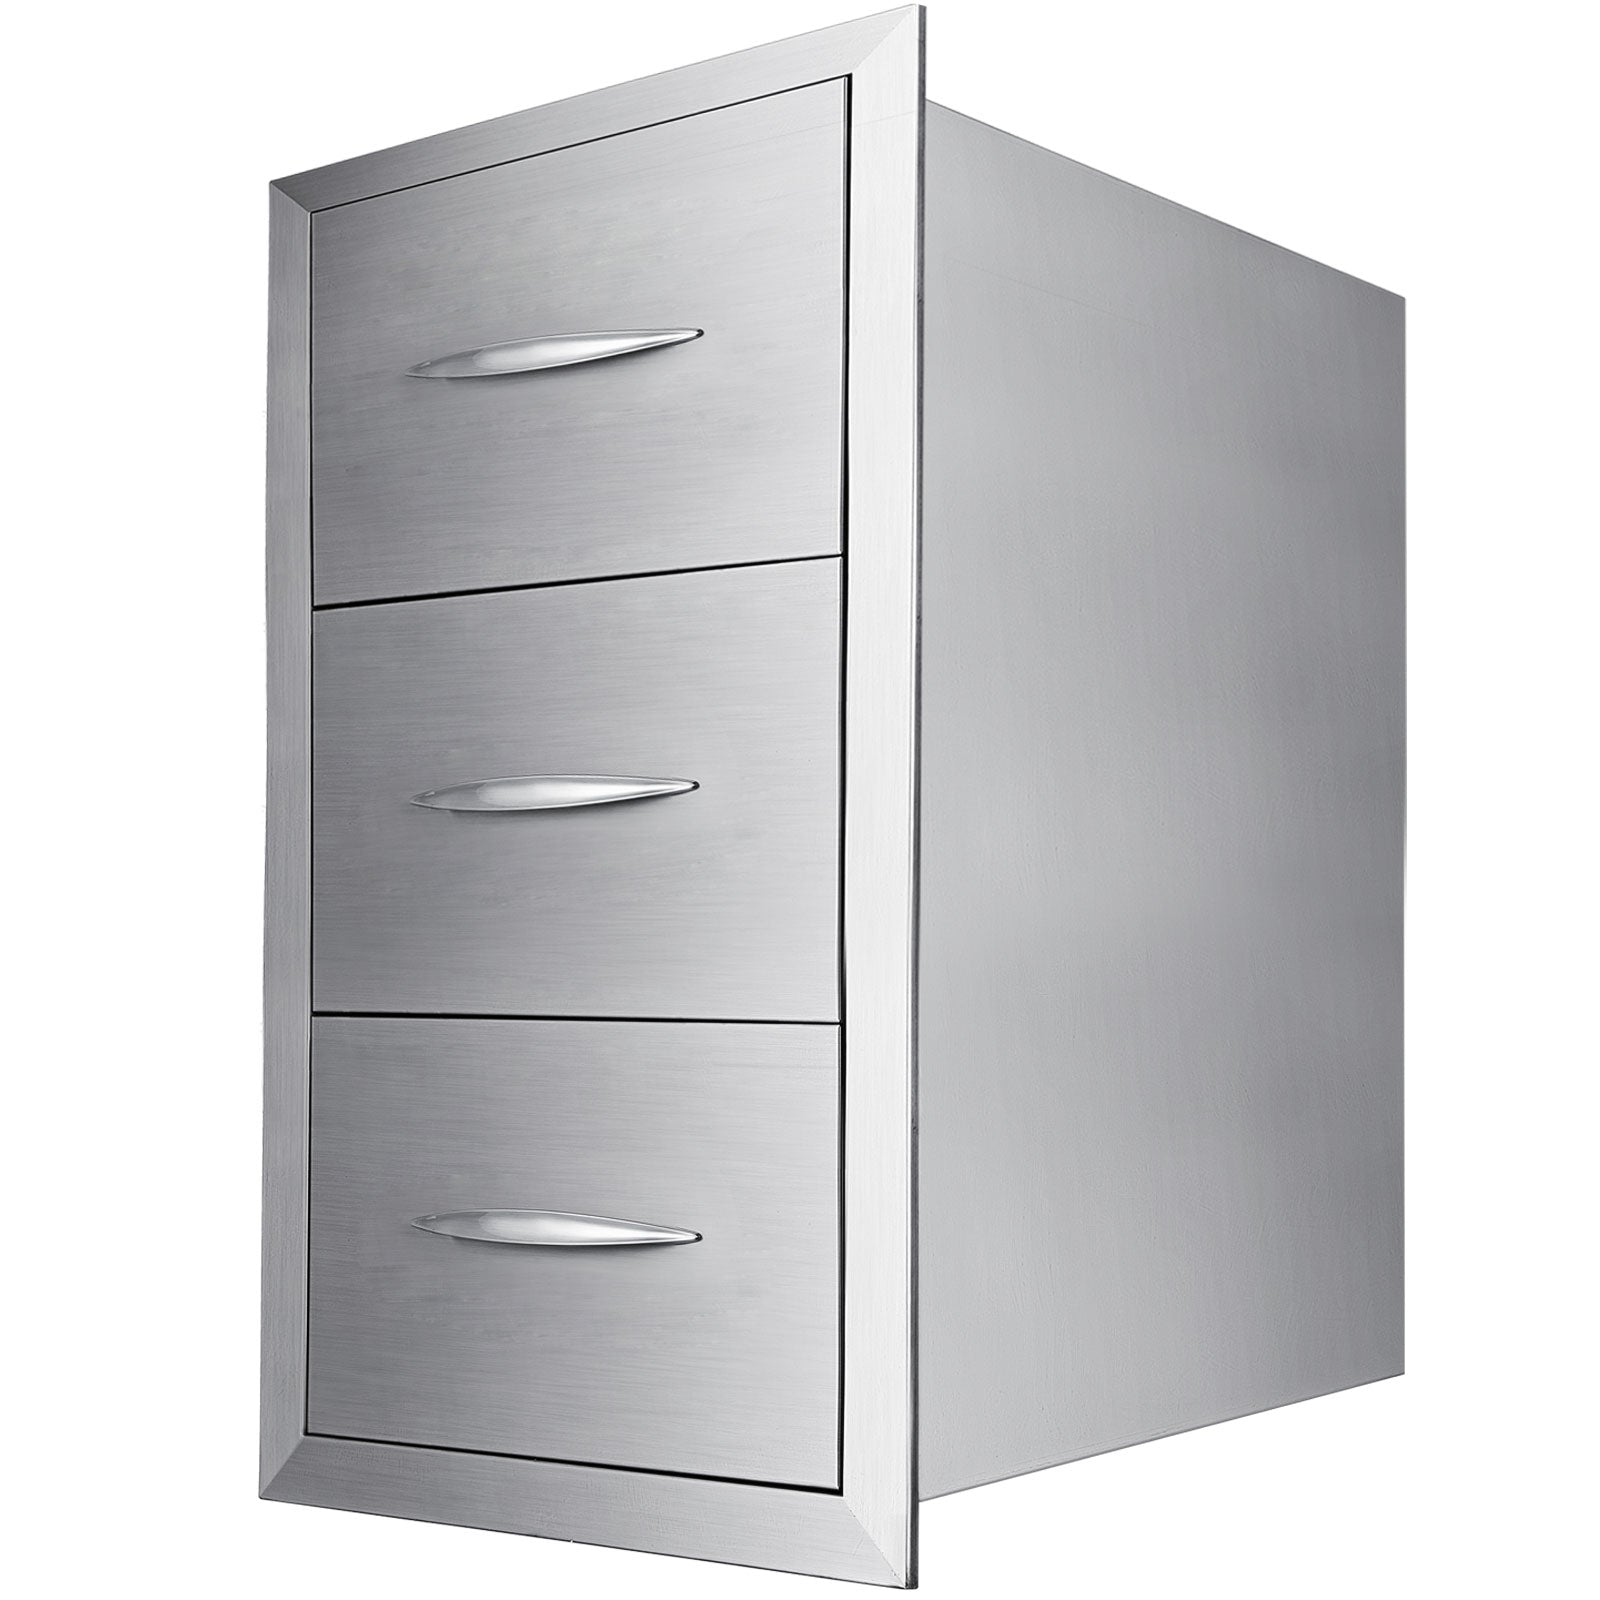 Porte D'accès Bbq De Cuisine Barbecue 45x35x40 Cm Chest Of Drawers Kitchen